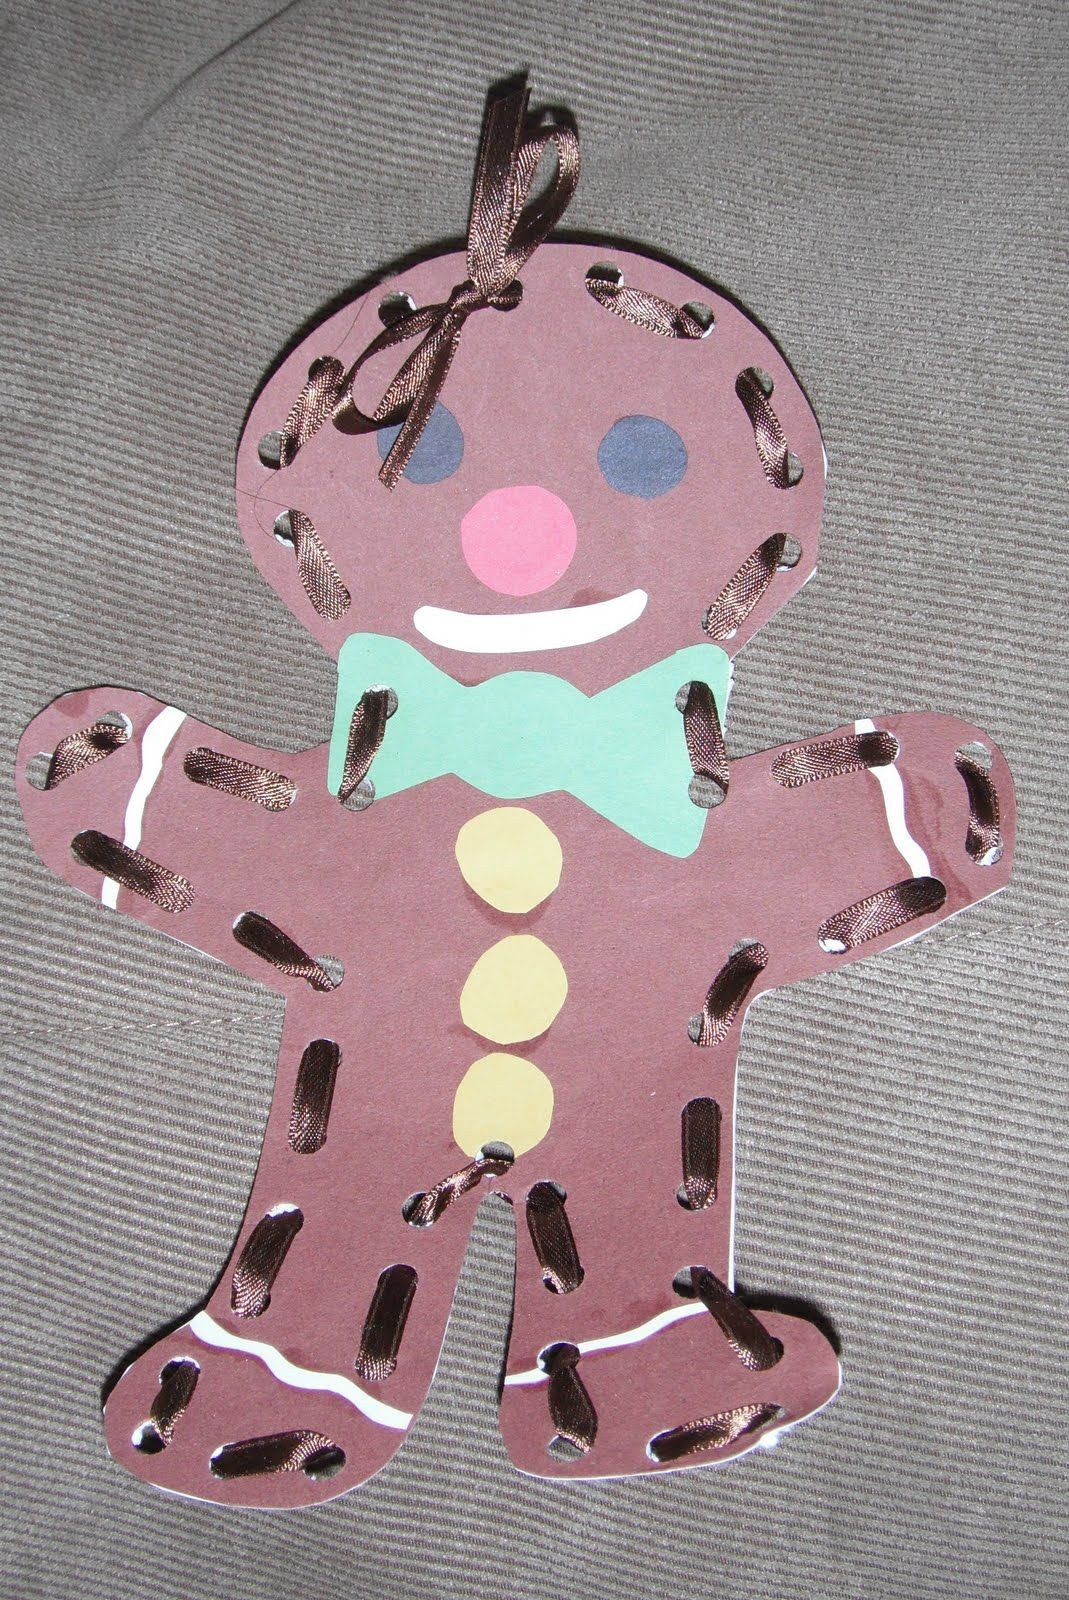 gingerbread man craft | Gingerbread man | Pinterest | Manualidades ...